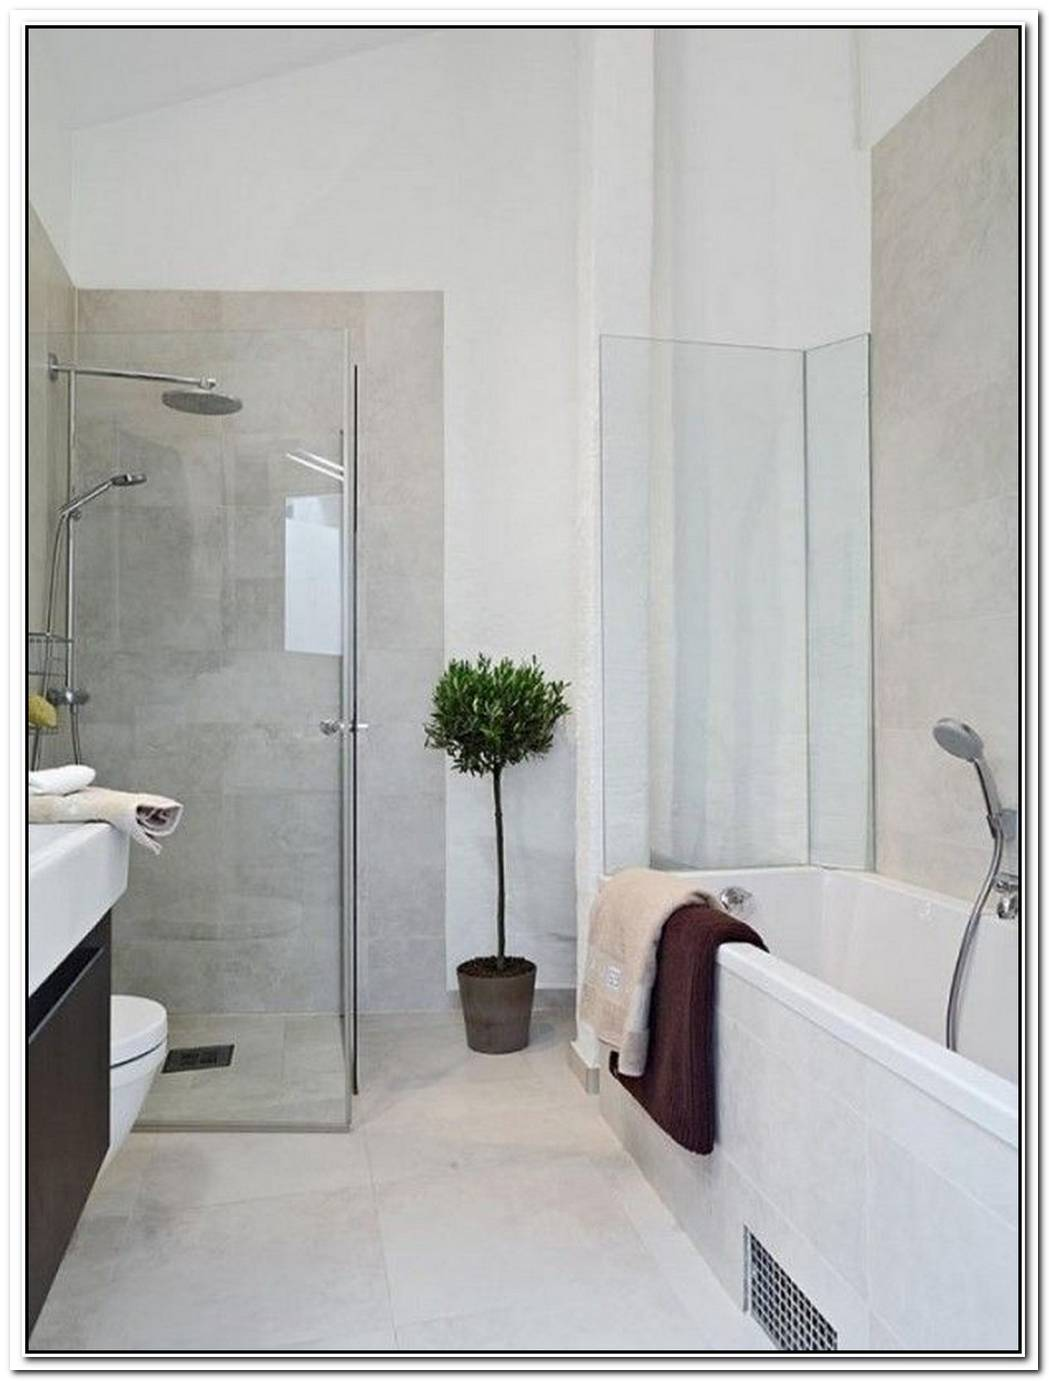 LessIsMore Modern Bathroom Decor